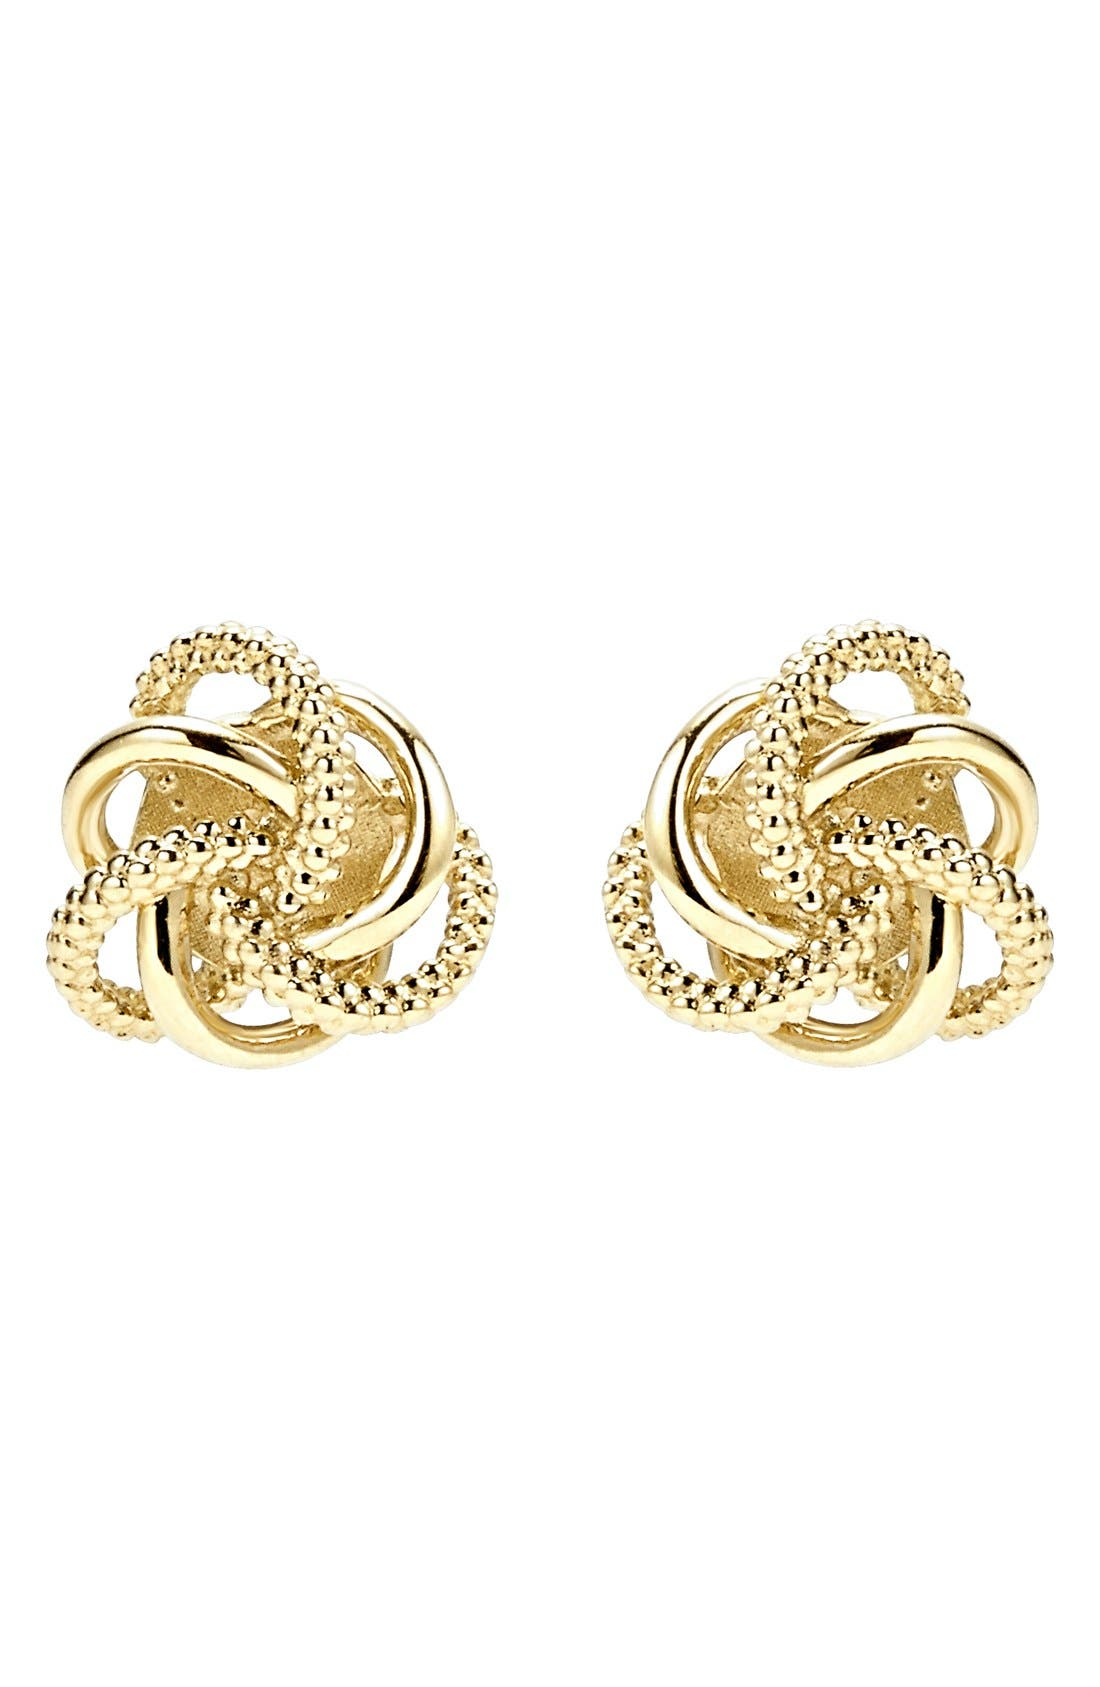 'Love Knot' Stud Earrings,                             Alternate thumbnail 2, color,                             GOLD